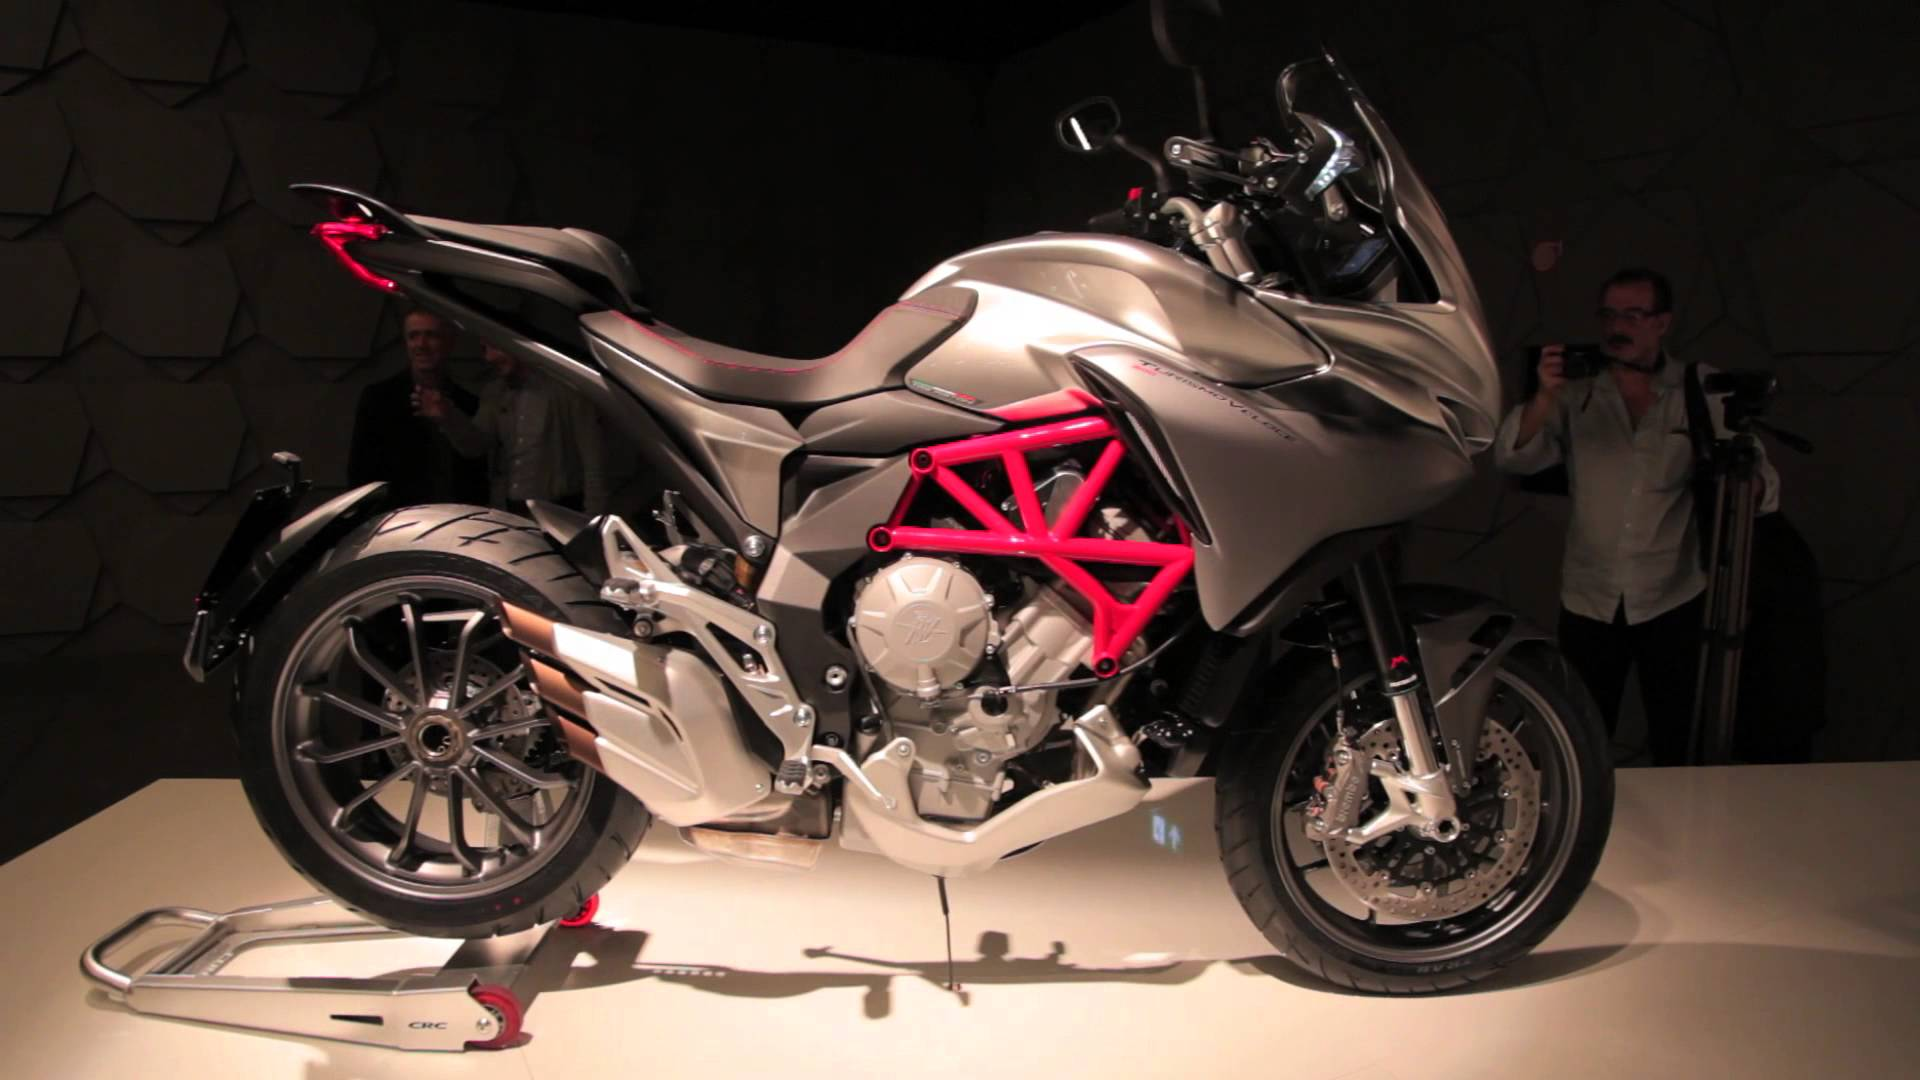 MV Agusta TurismoVeloce Lusso 800 2013 images #117208